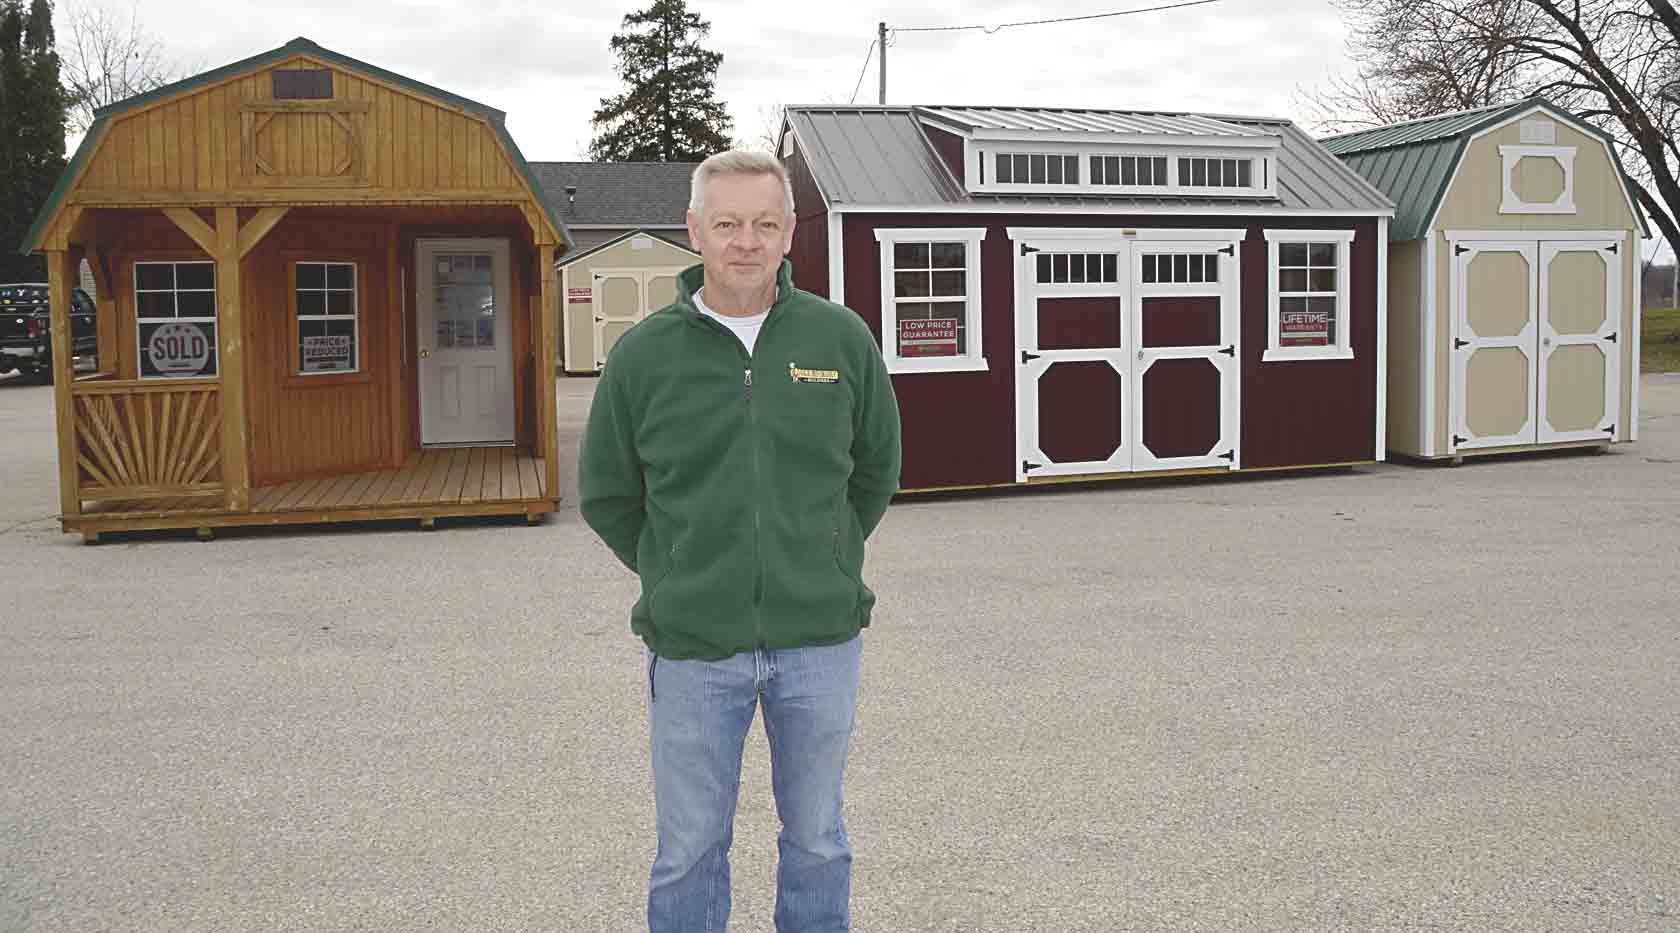 Roger (pictured) and Joni Loftsgard have started a new business in Clermont R&J Loftsgard Old Hickory Shed will be selling Old Hickory Buildings along Highway 18 in Clermont. Chris DeBack photoLoftsgards open Old Hickory Building sales location in Clermont...